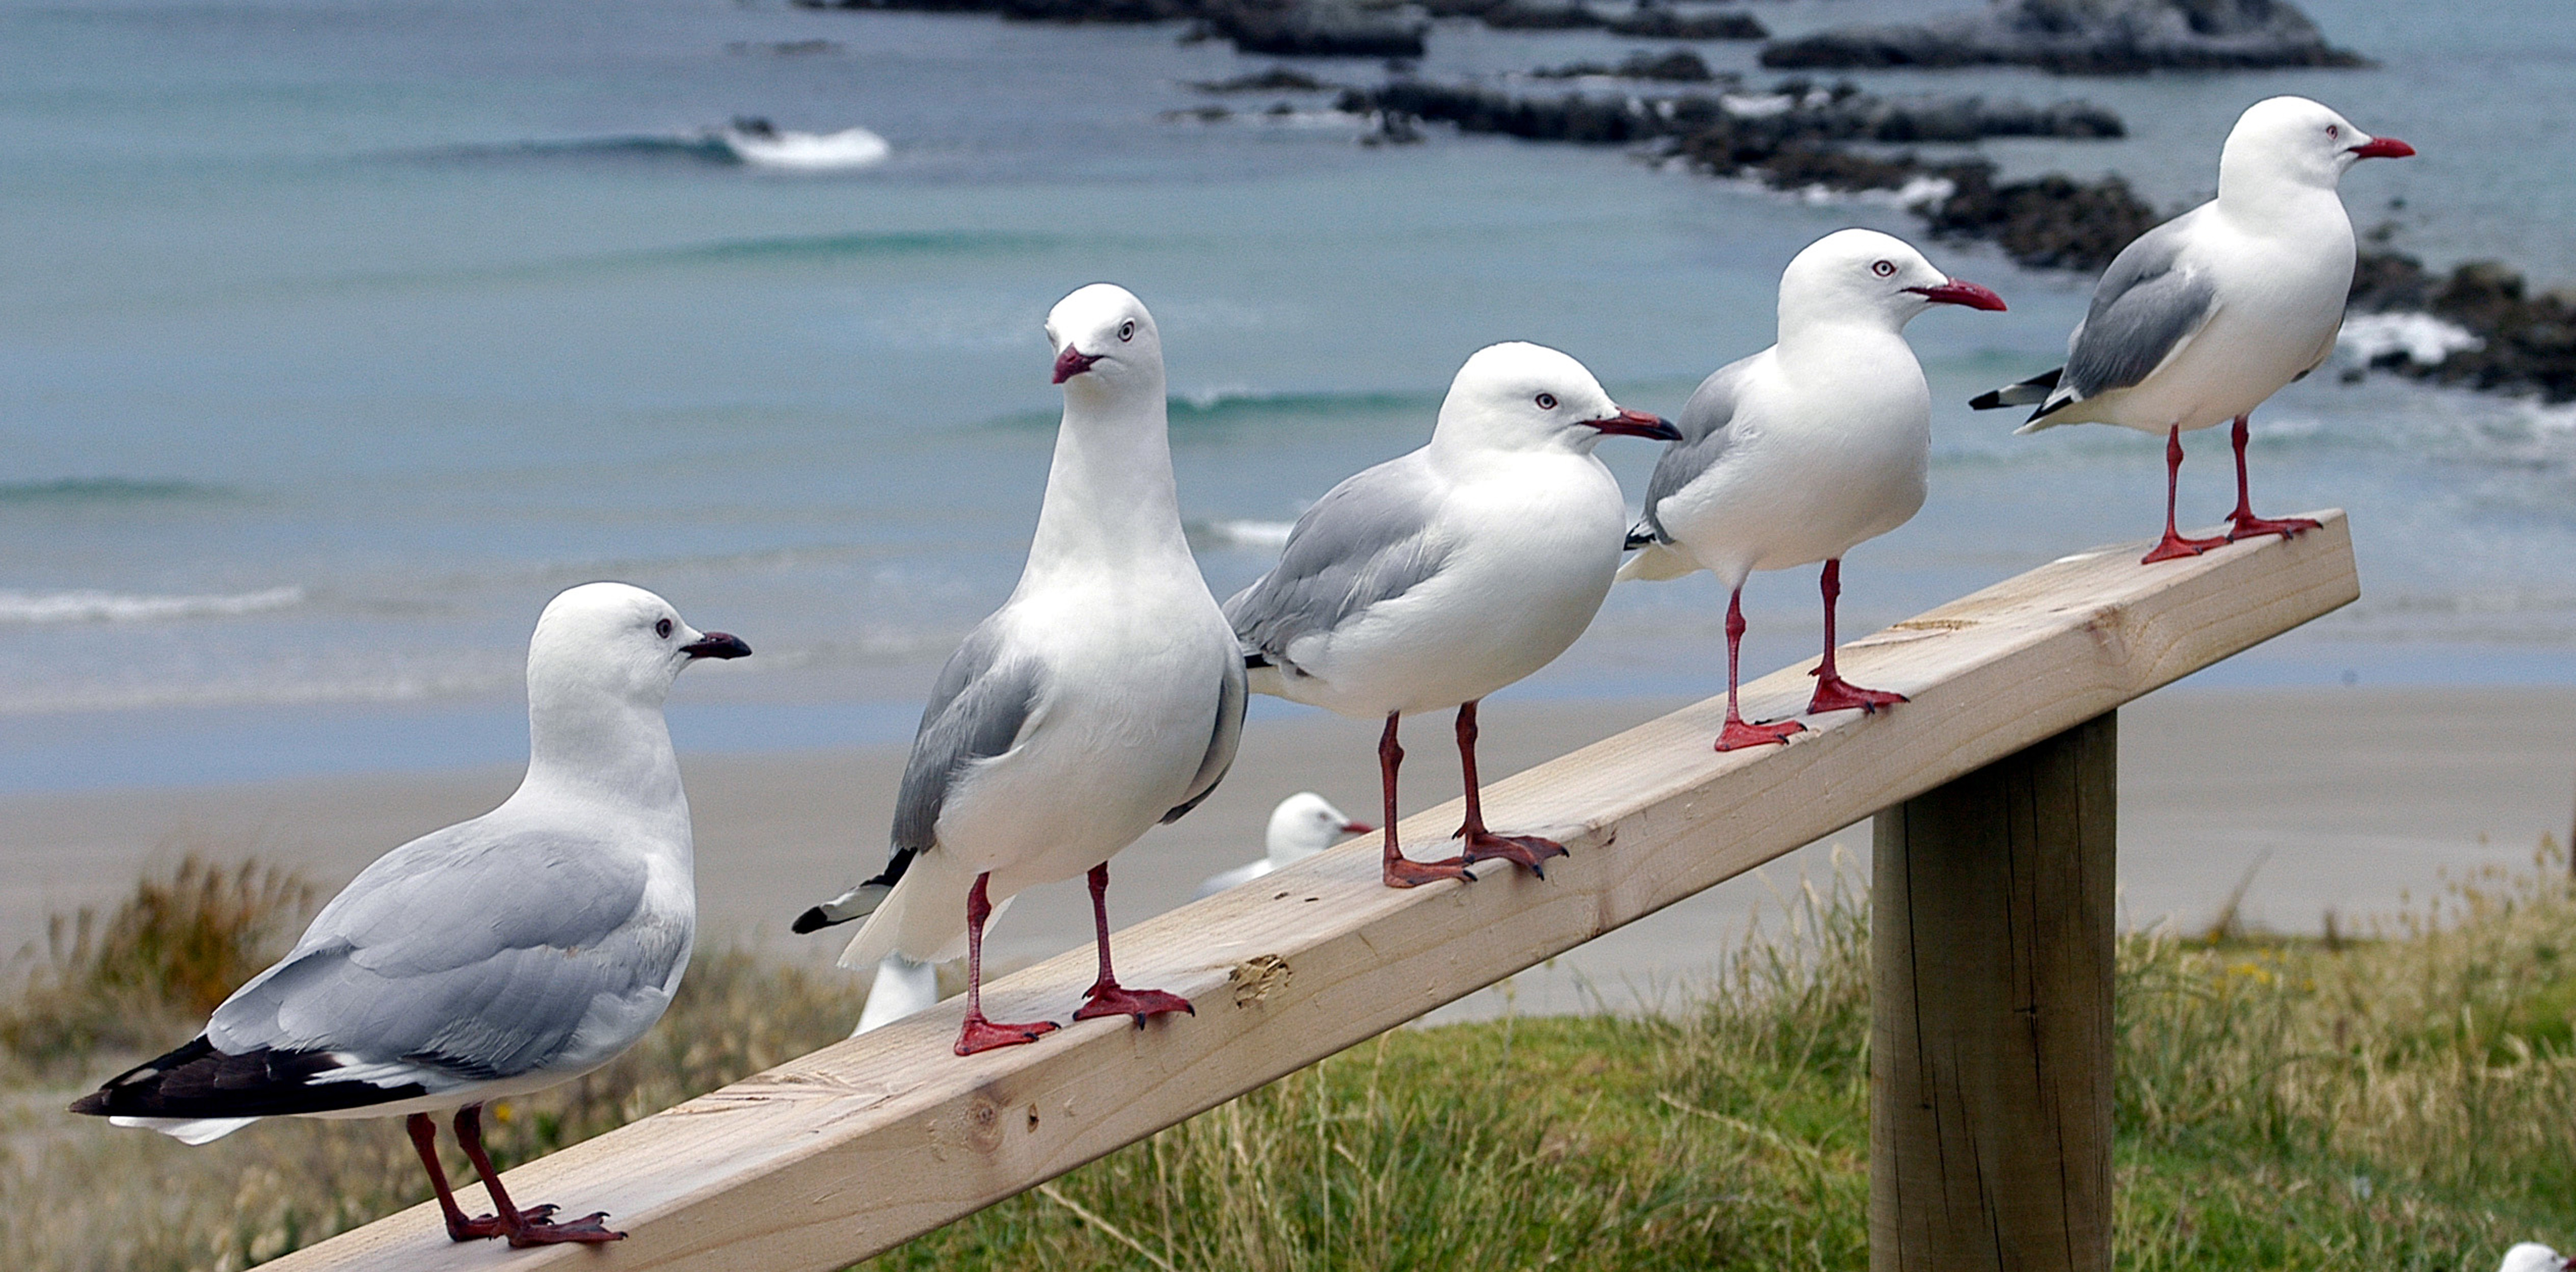 Red footed Seagulls